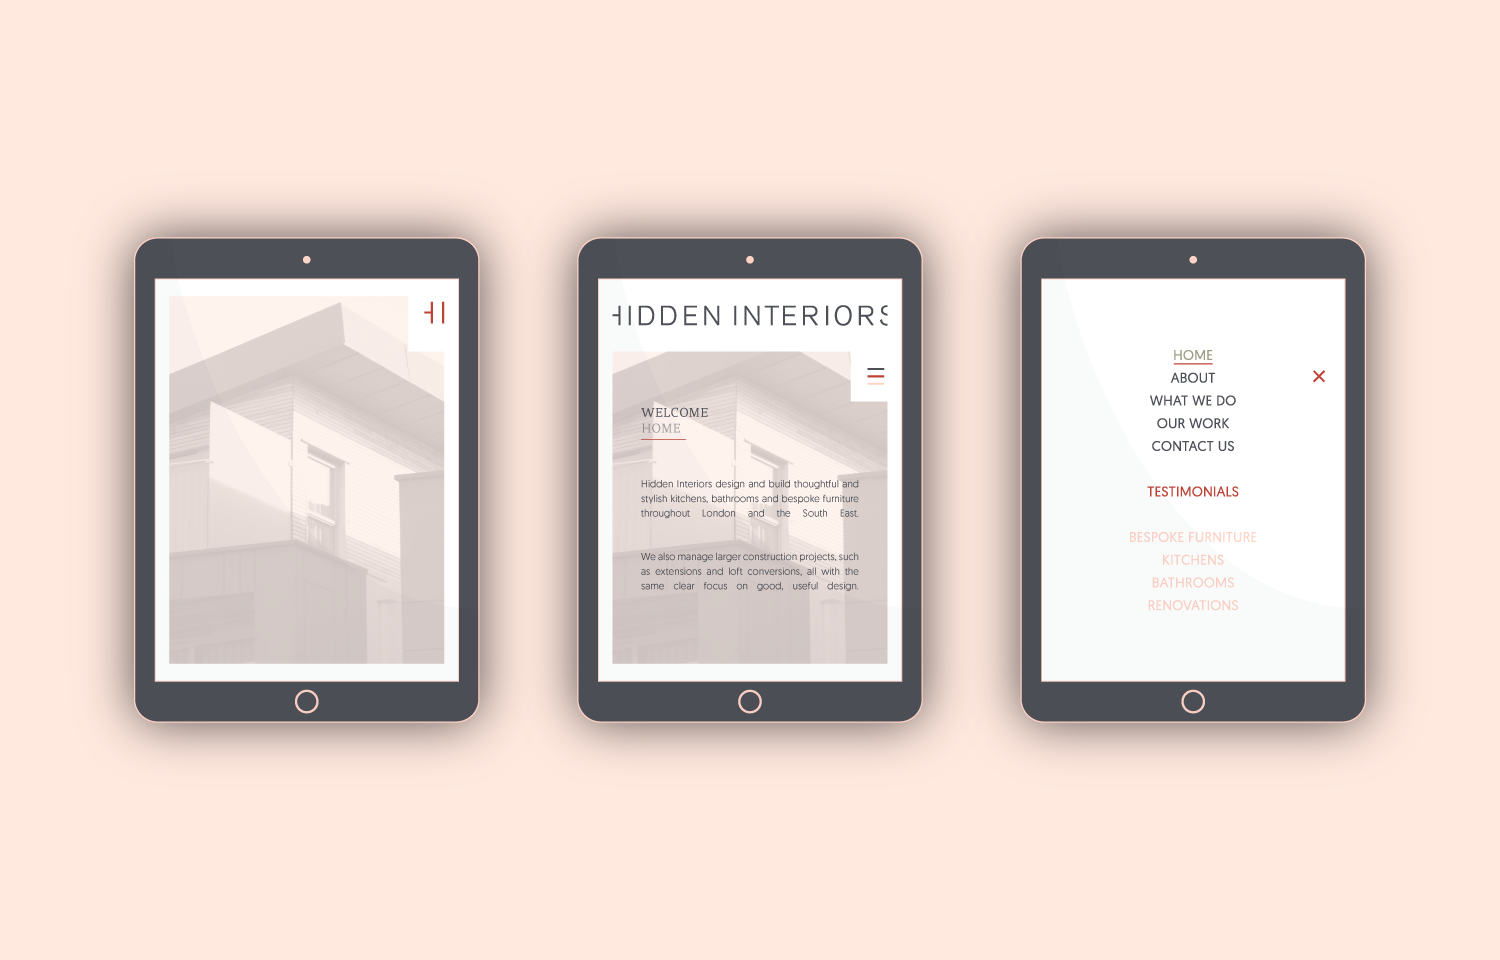 Hidden Interiors website designed for mobile (tablet view).